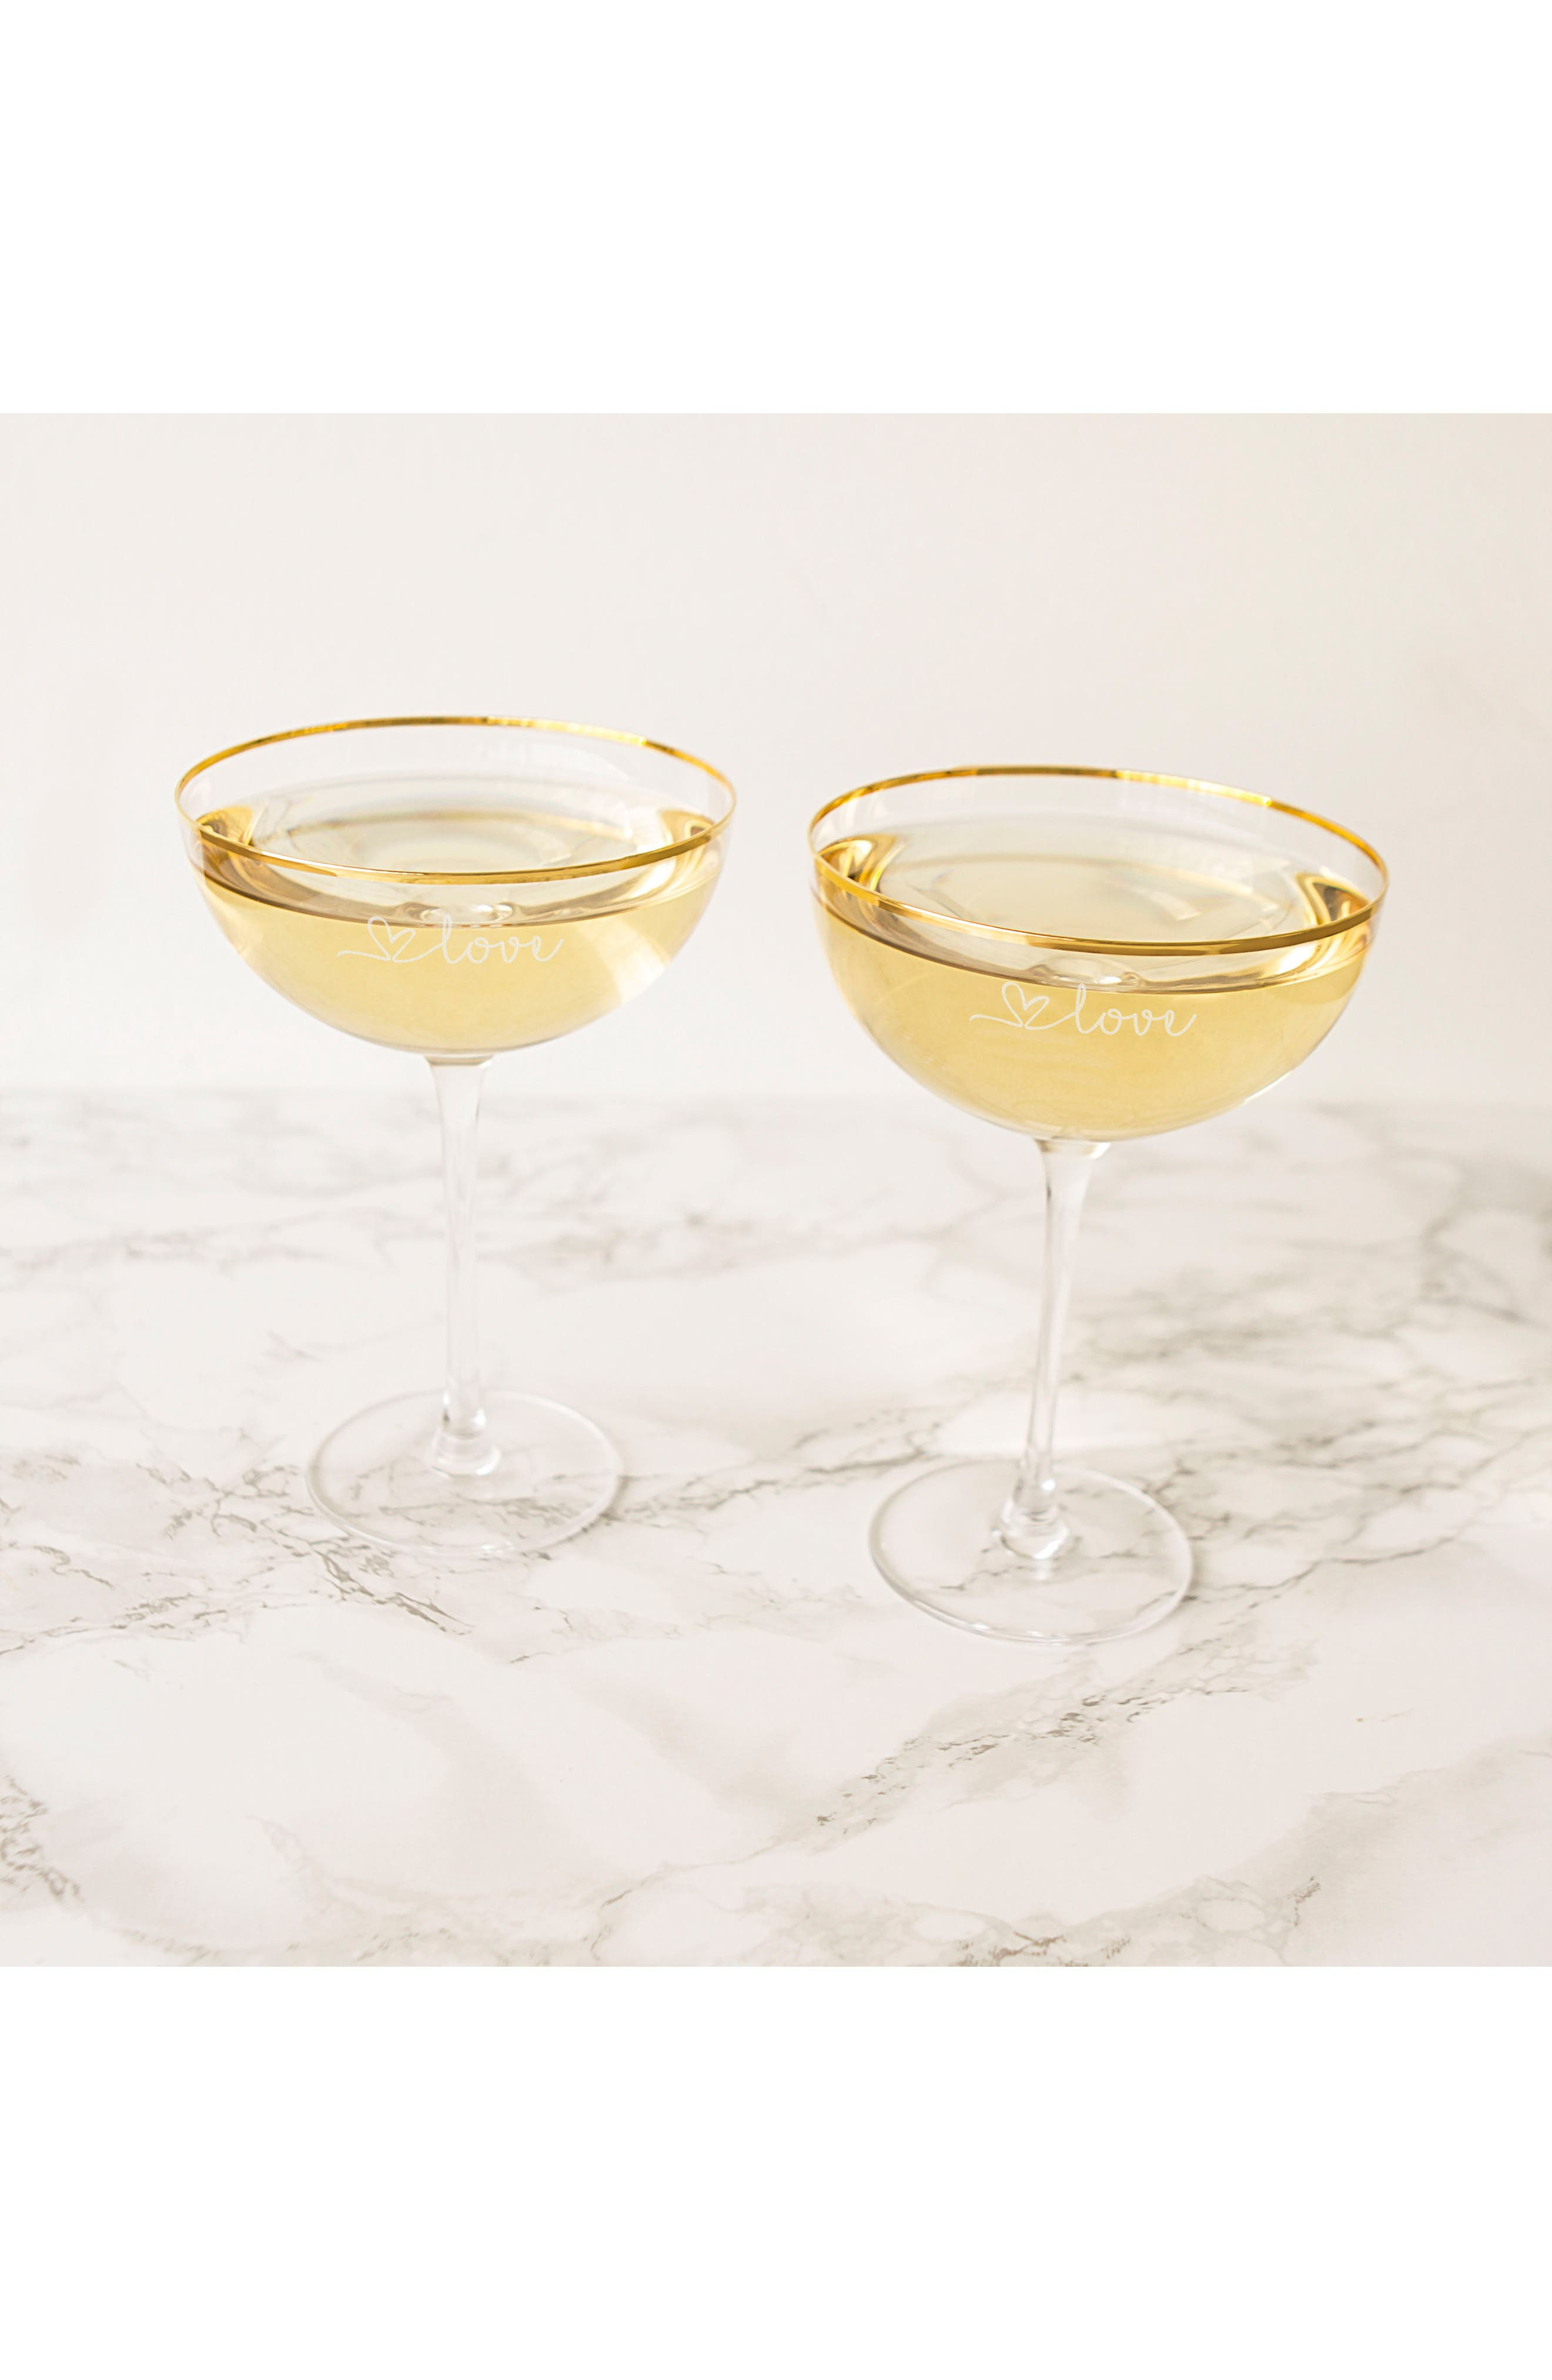 Love Set of 2 Champagne Coupe Toasting Glasses,                             Alternate thumbnail 5, color,                             710